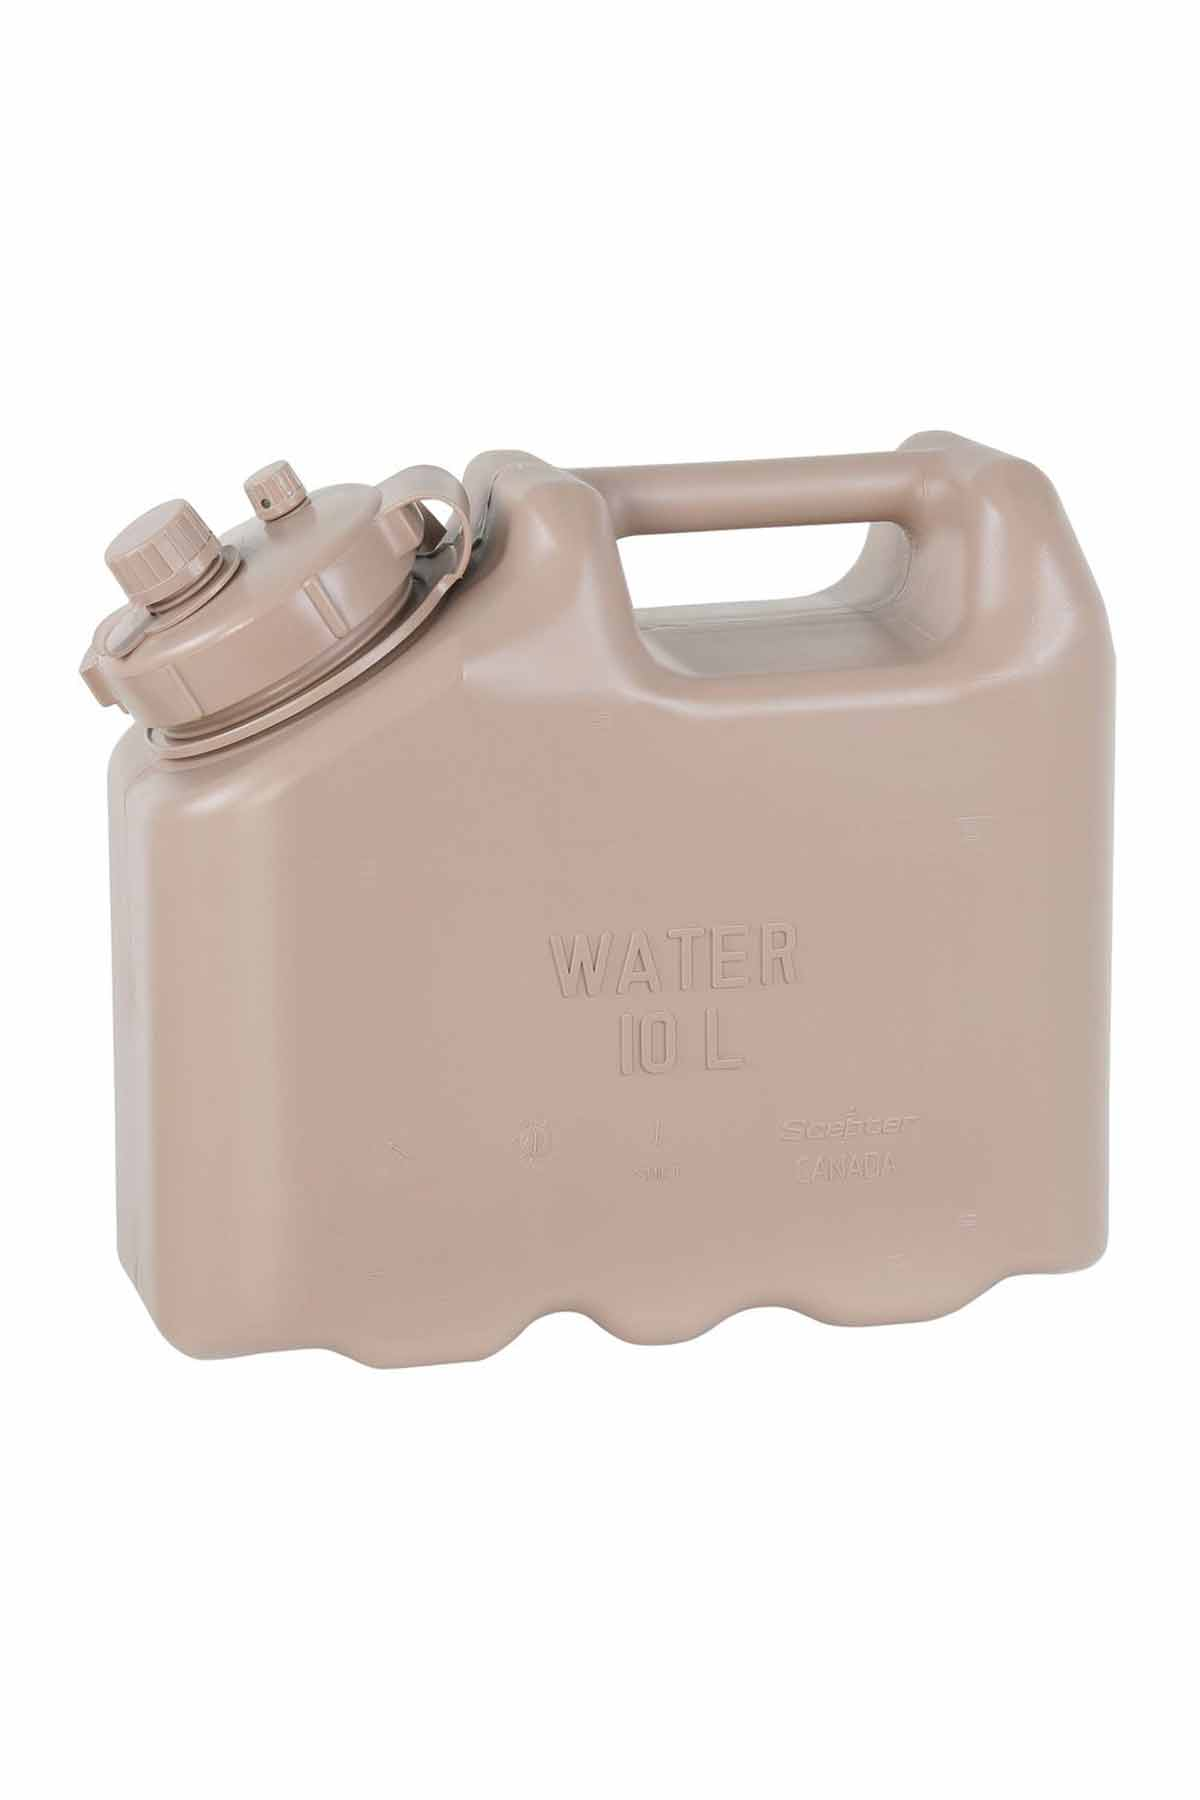 NRS 2.5 Gallon Scepter Water Container